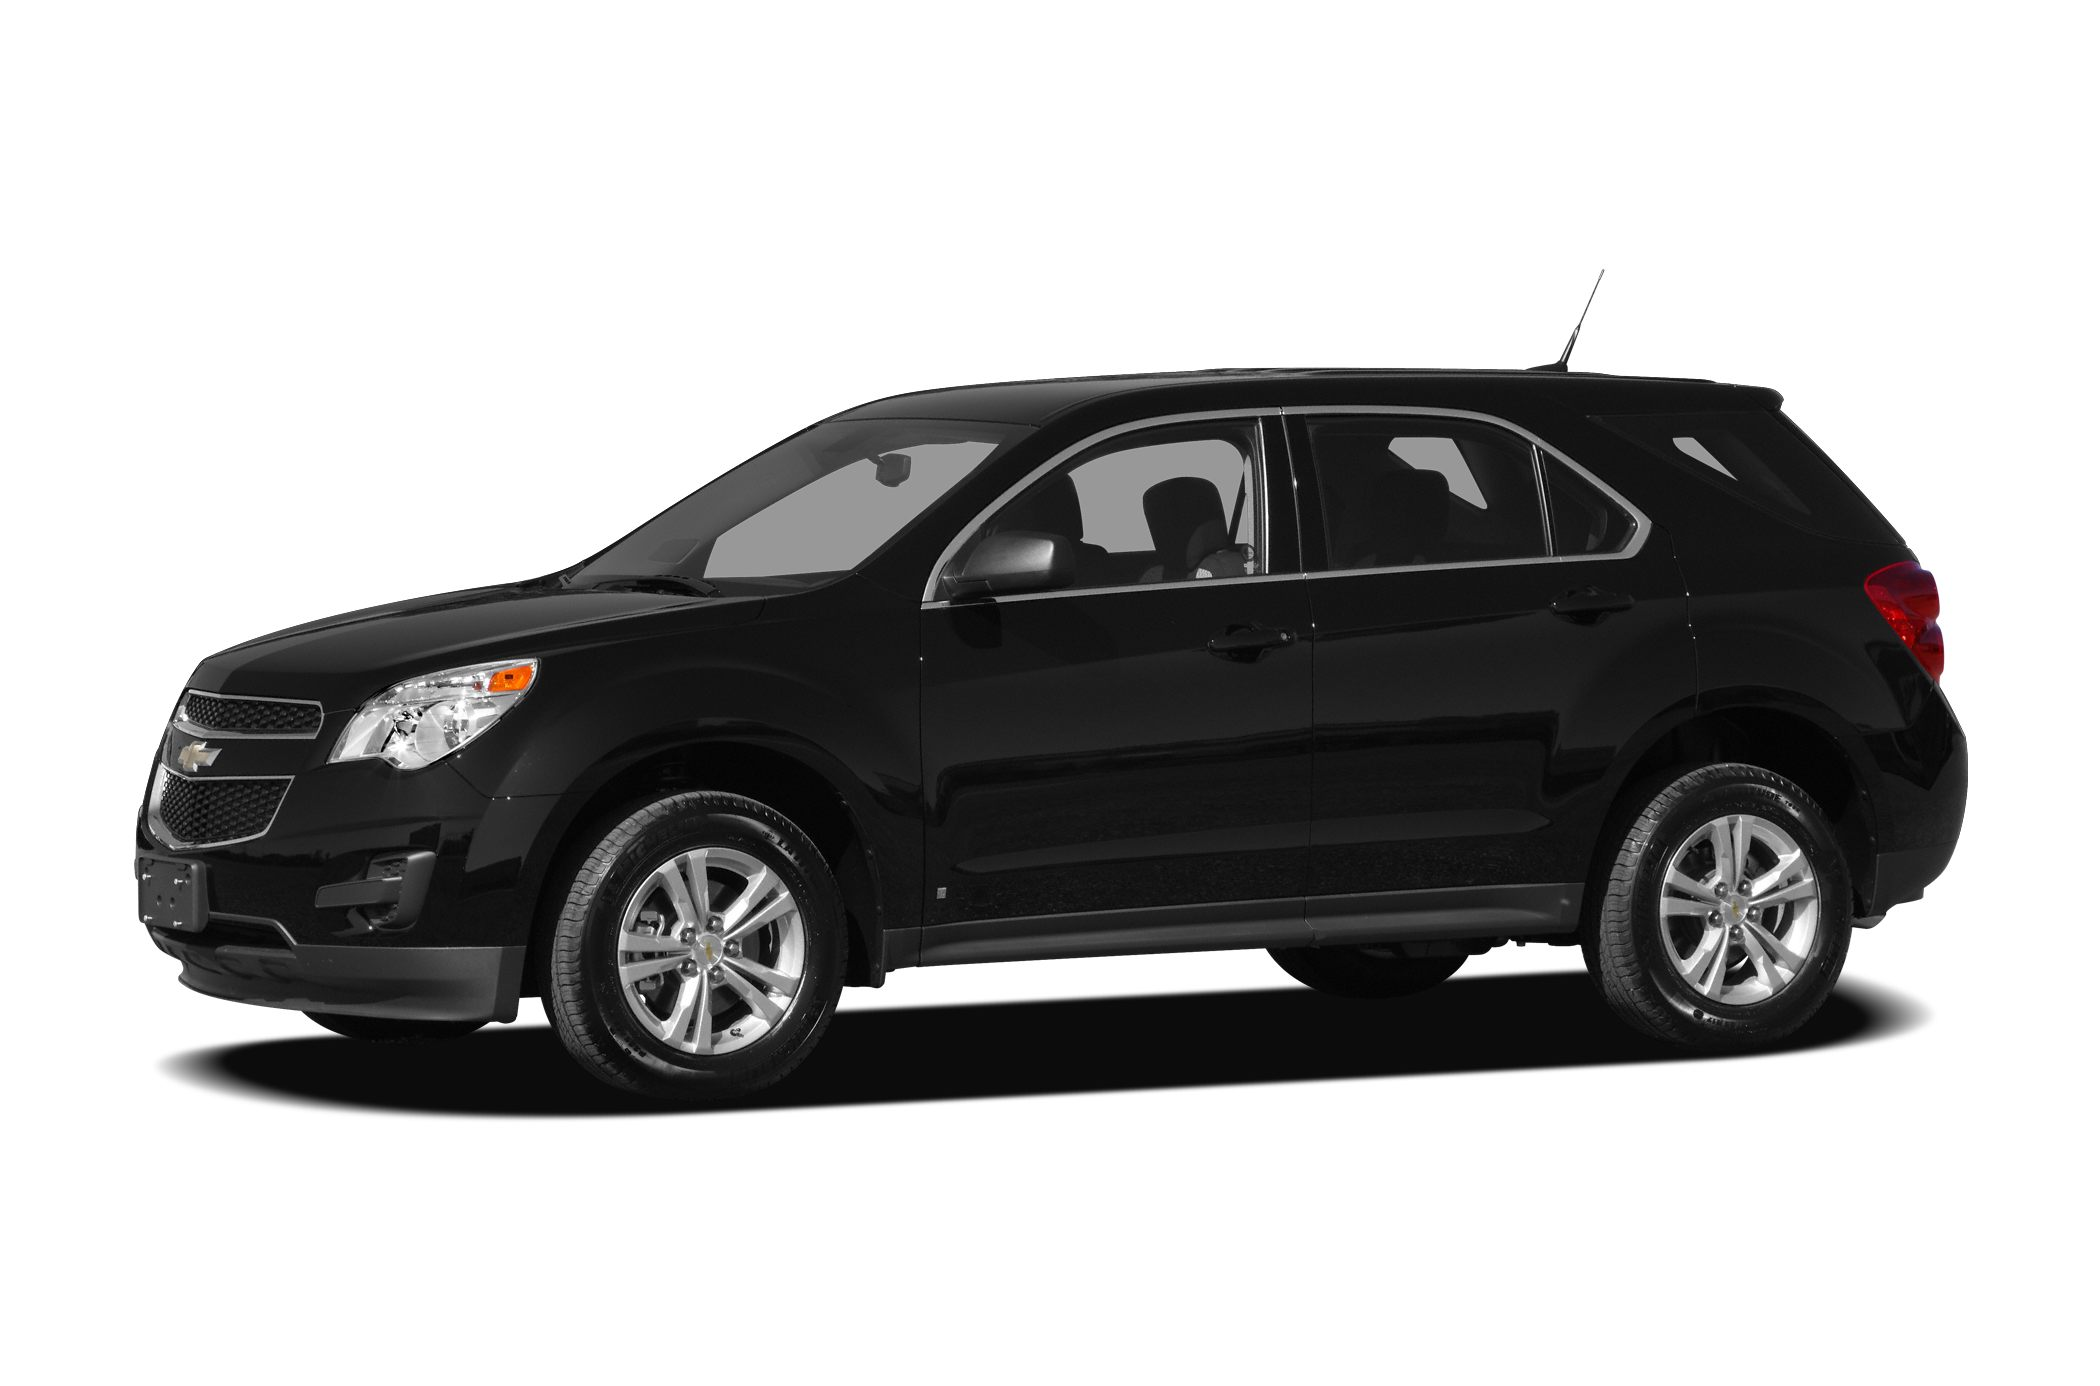 2010 Chevrolet Equinox LT SUV for sale in South Hill for $12,995 with 103,791 miles.